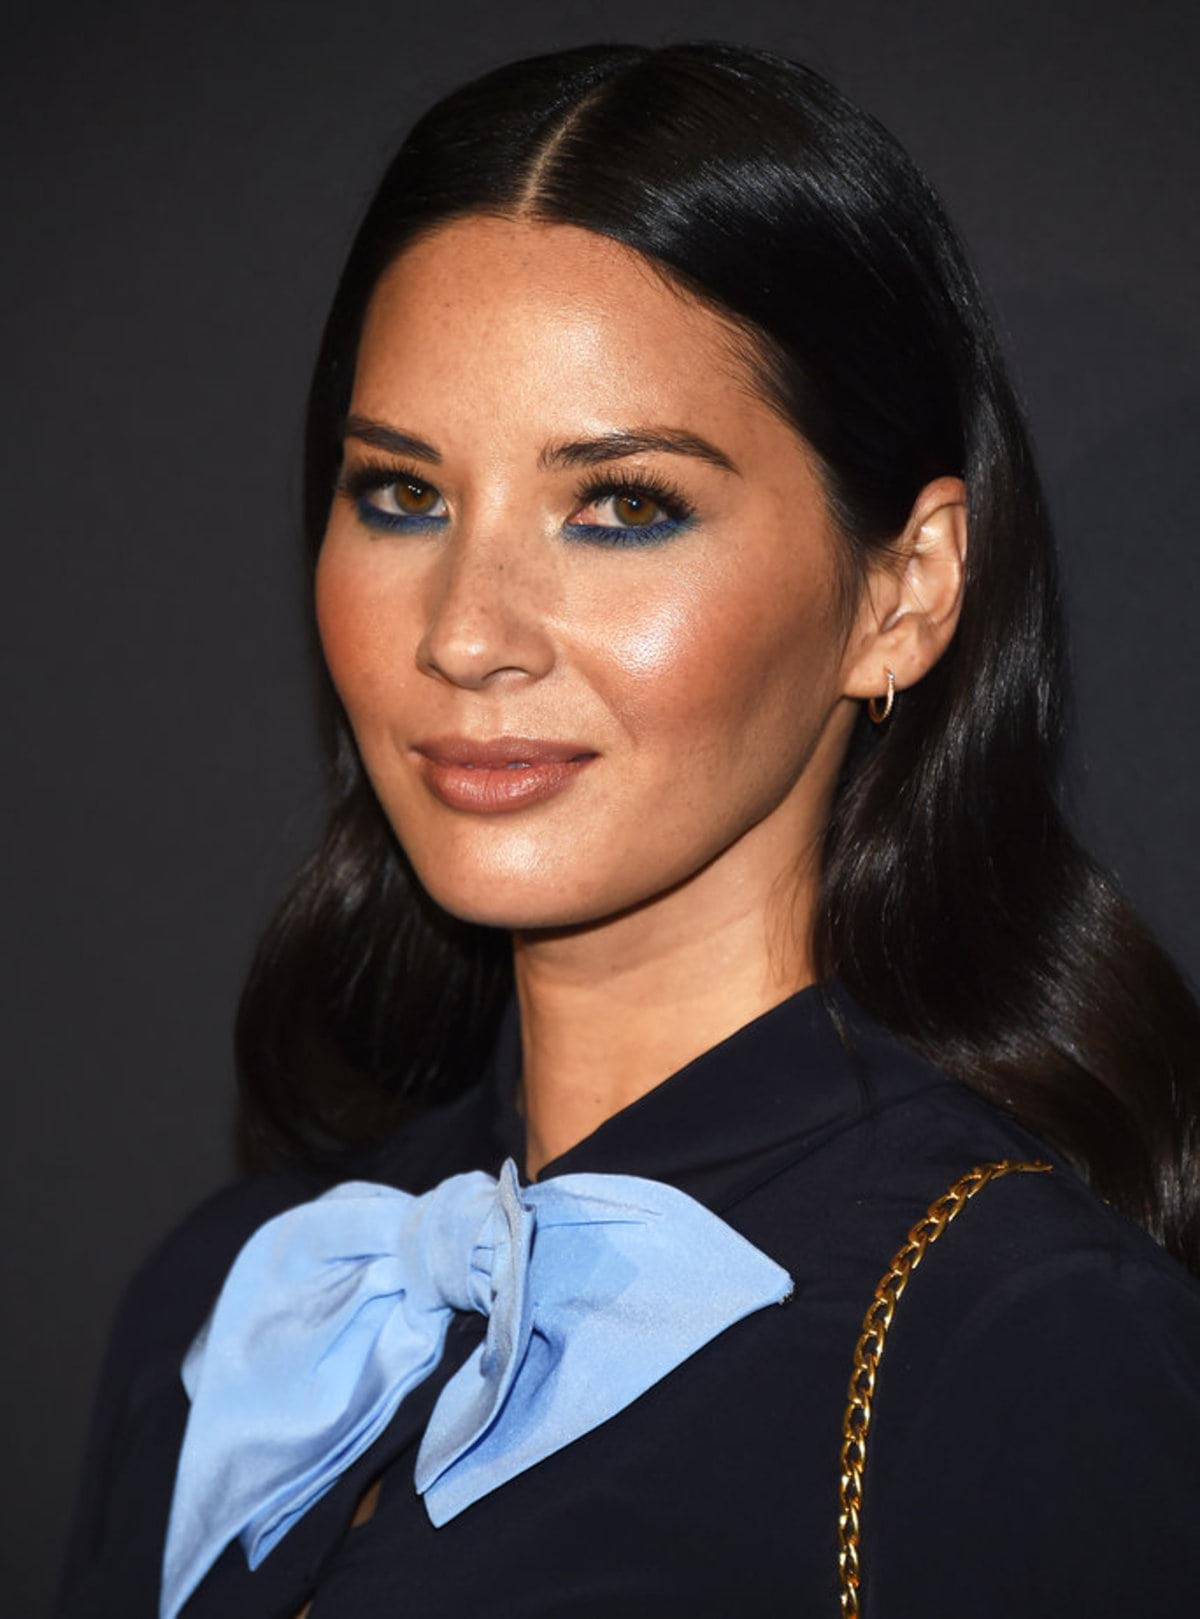 LOS ANGELES, CA - NOVEMBER 15: Actress Olivia Munn arrives at a screening of David O. Russell's 'Past Forward' hosted by Prada at Hauser Wirth & Schimmel on November 15, 2016 in Los Angeles, California. (Photo by Amanda Edwards/WireImage)